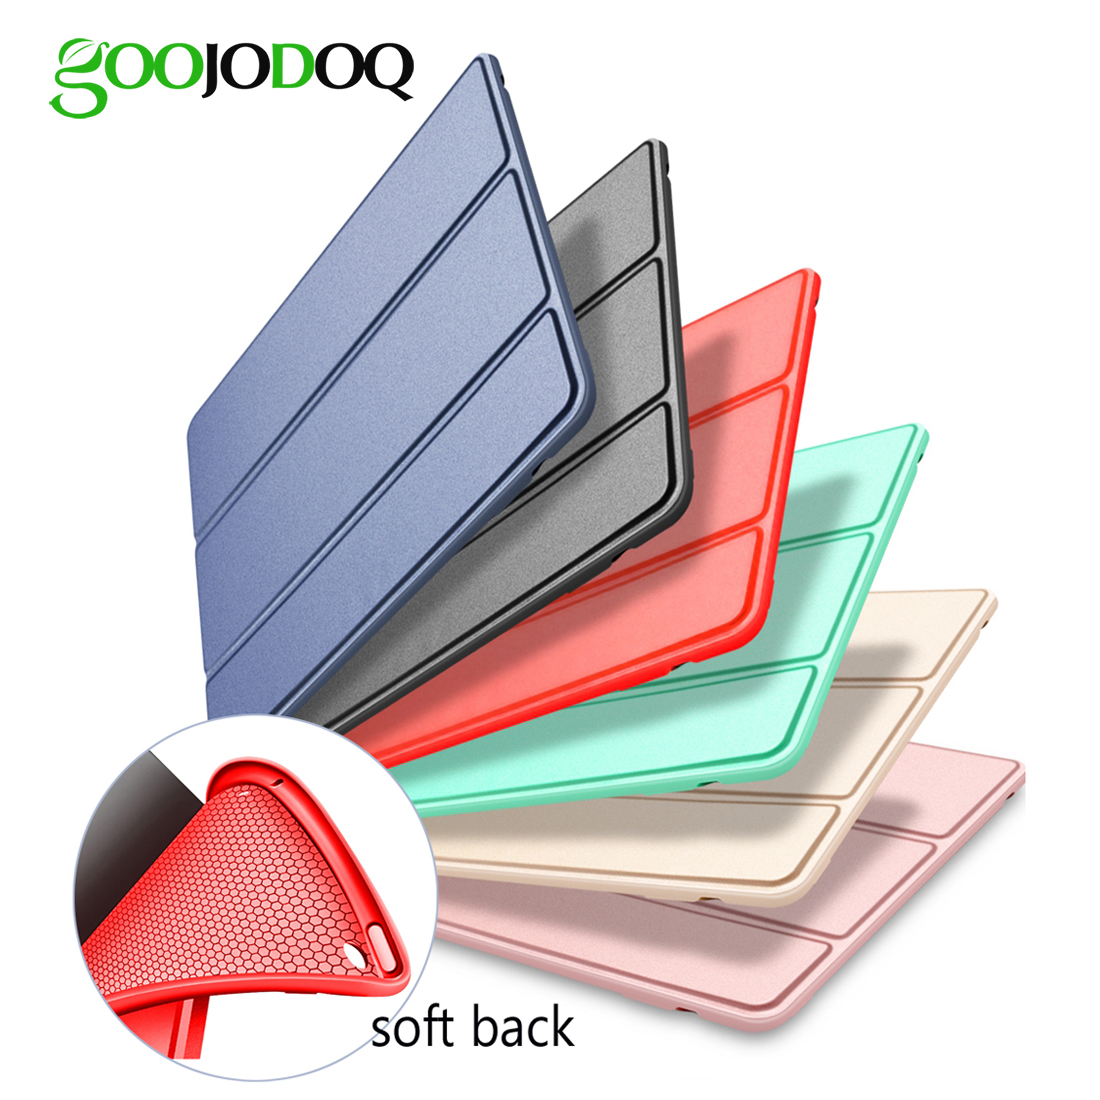 For iPad Air 2 Air 1 Case Silicone Soft Back Slim Pu Leather Smart Cover for Apple iPad Air Case Sturdy Stand Auto Sleep / Wake ctrinews flip case for ipad air 2 smart stand pu leather case for ipad air 2 tablet protective case wake up sleep cover coque